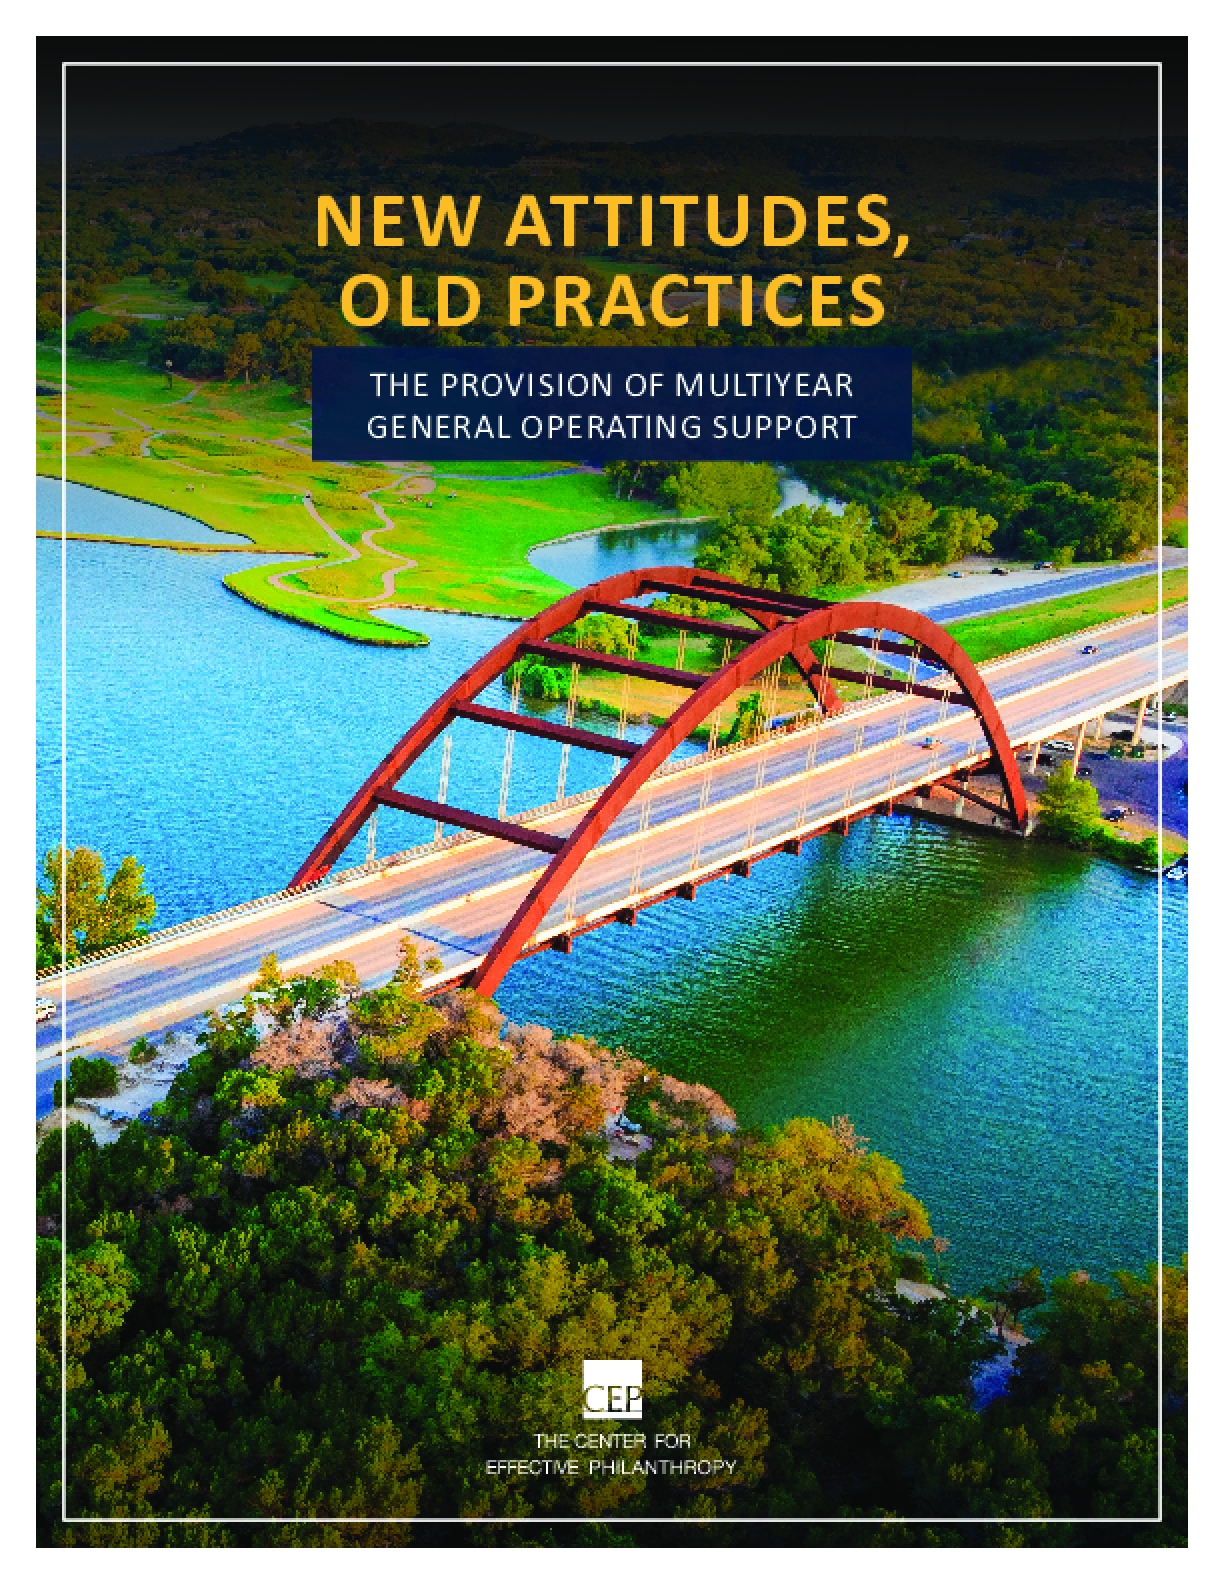 New Attitudes, Old Practices: The Provision of Multiyear General Operating Support